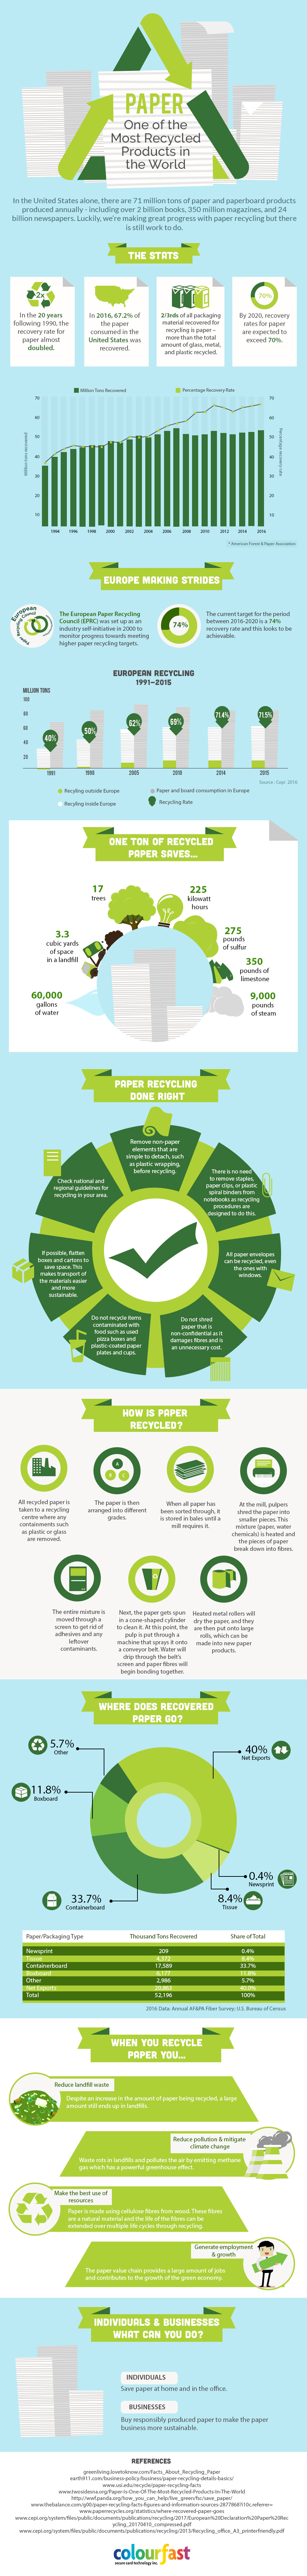 Paper Recycling [Infographic] | ecogreenlove